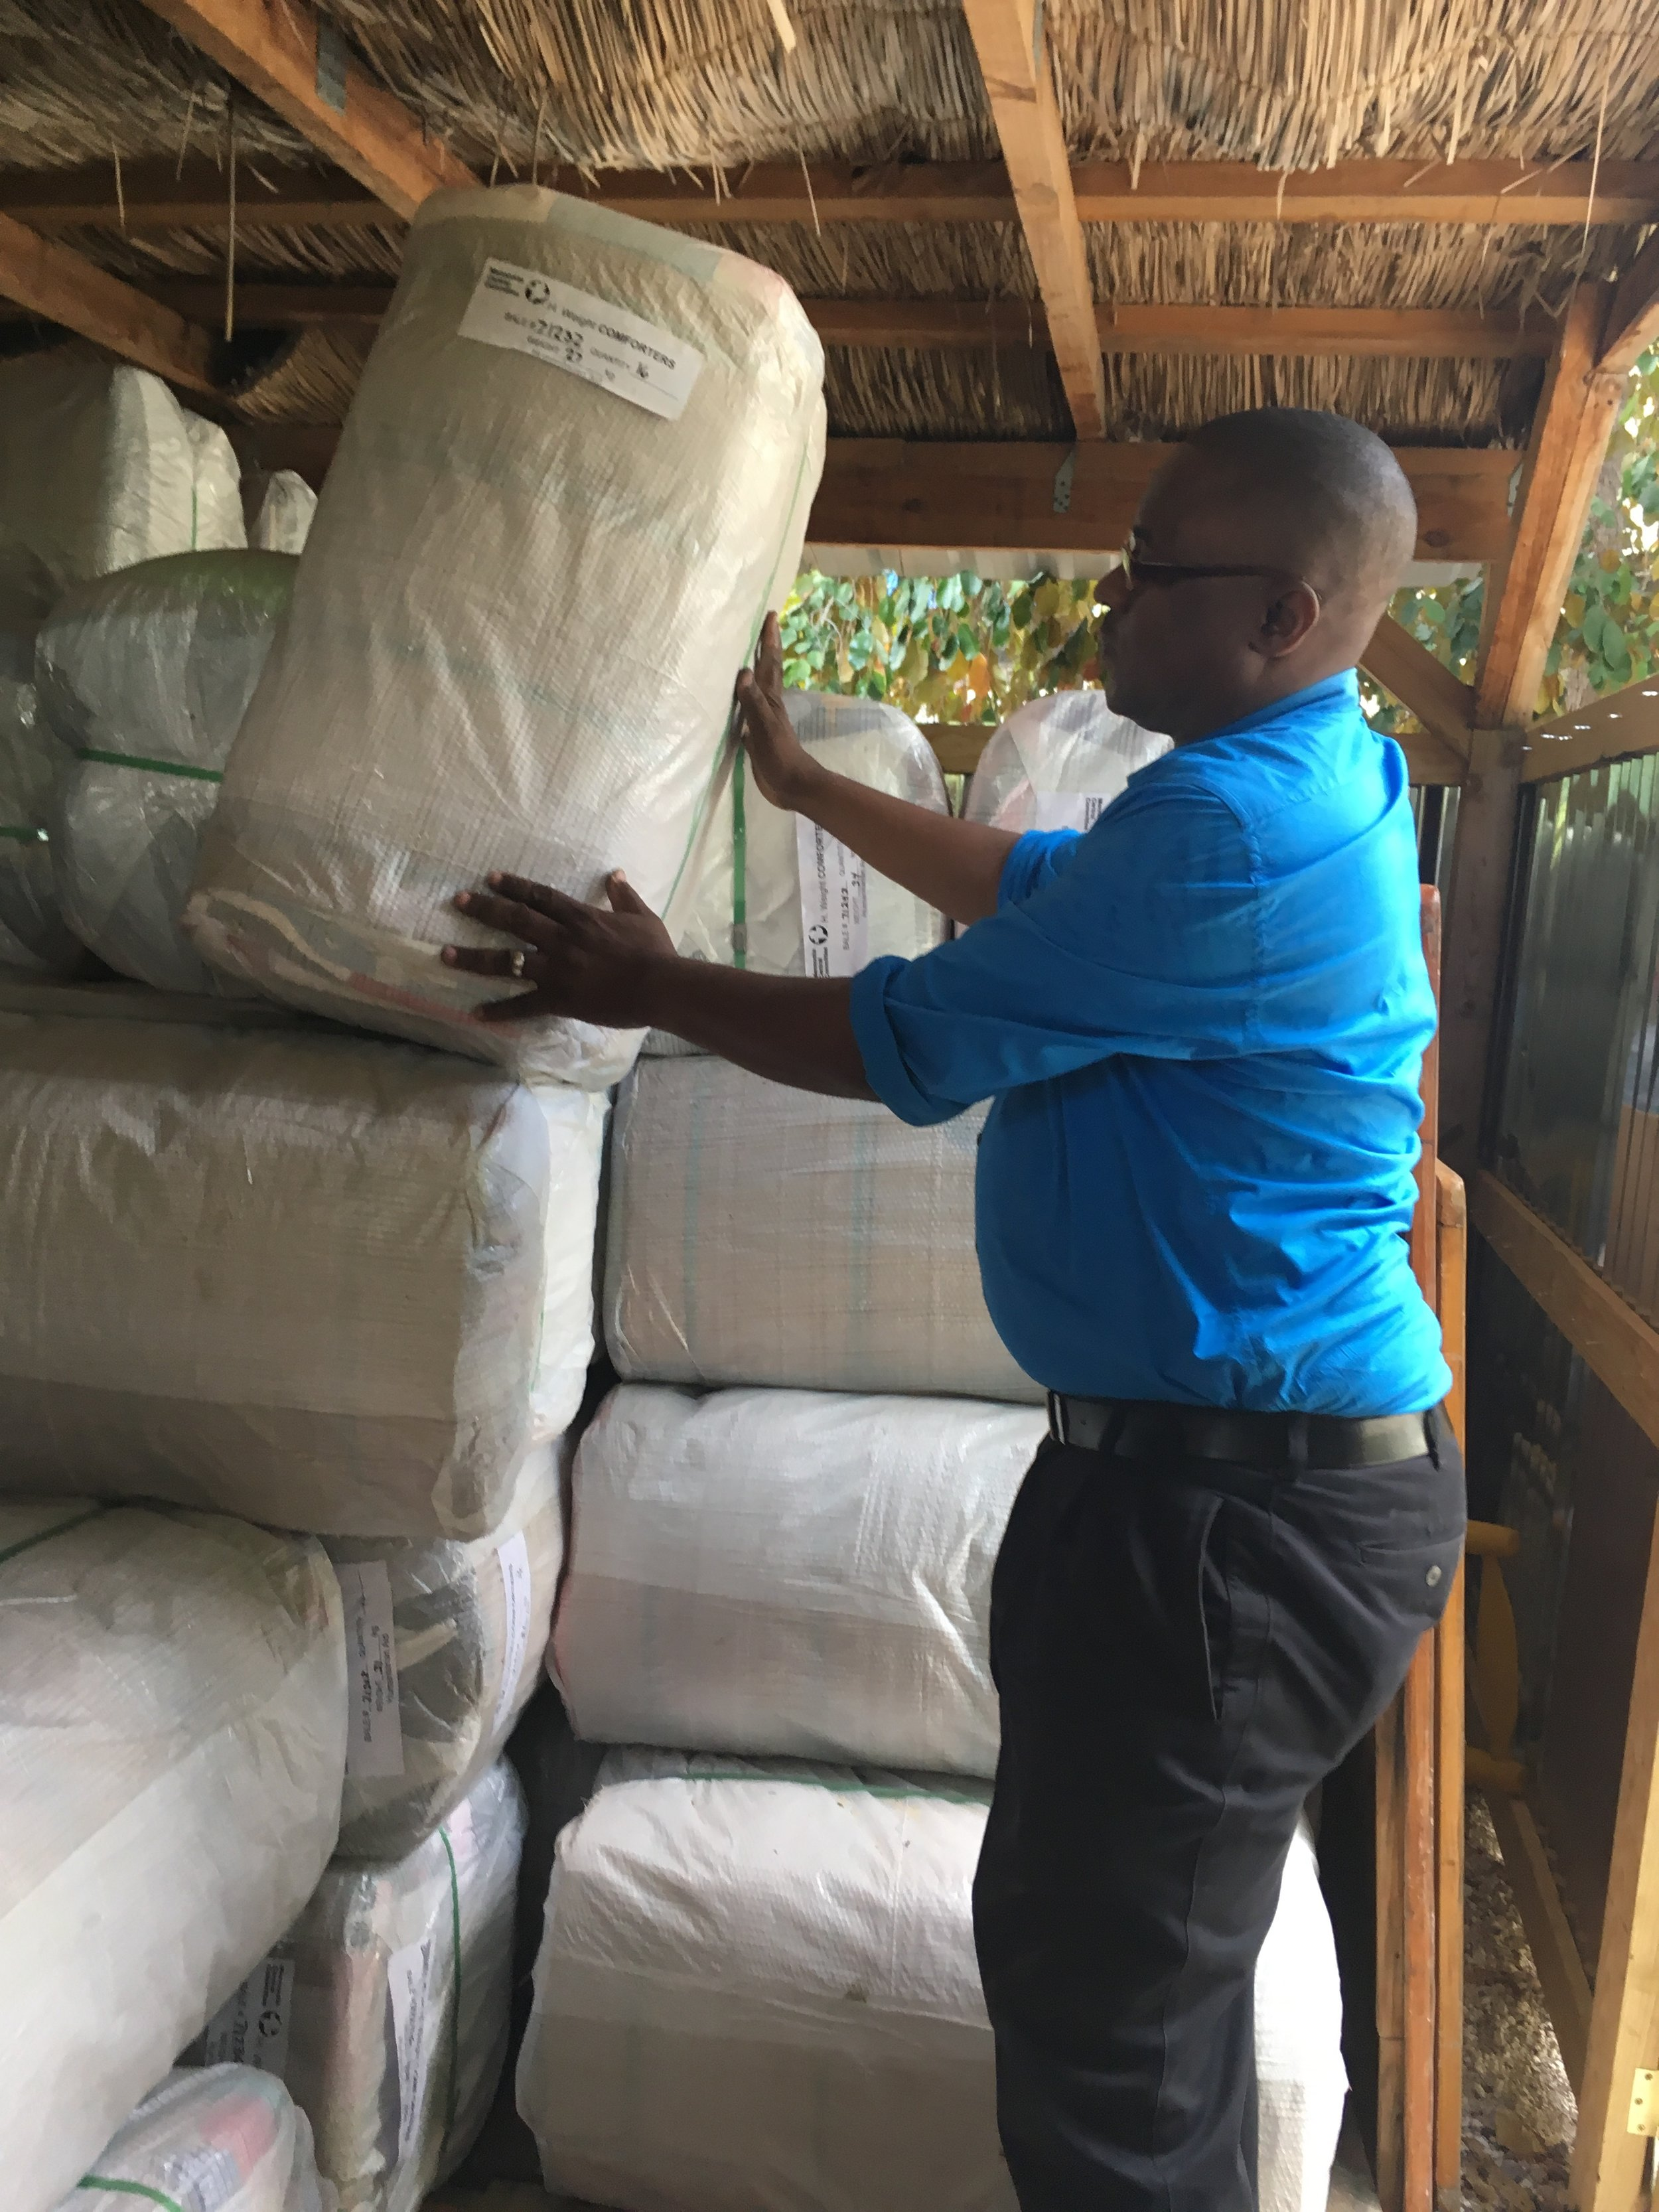 Pictured above, Herve Alcinna loading material aid in MCC Haiti storage facility on office grounds in preparation for Hurricane Irma. As a result of the significant earthquake response, MCC in Haiti began prepositioning material aid in Haiti rather than waiting to place orders after disasters in order to be able to respond more quickly.